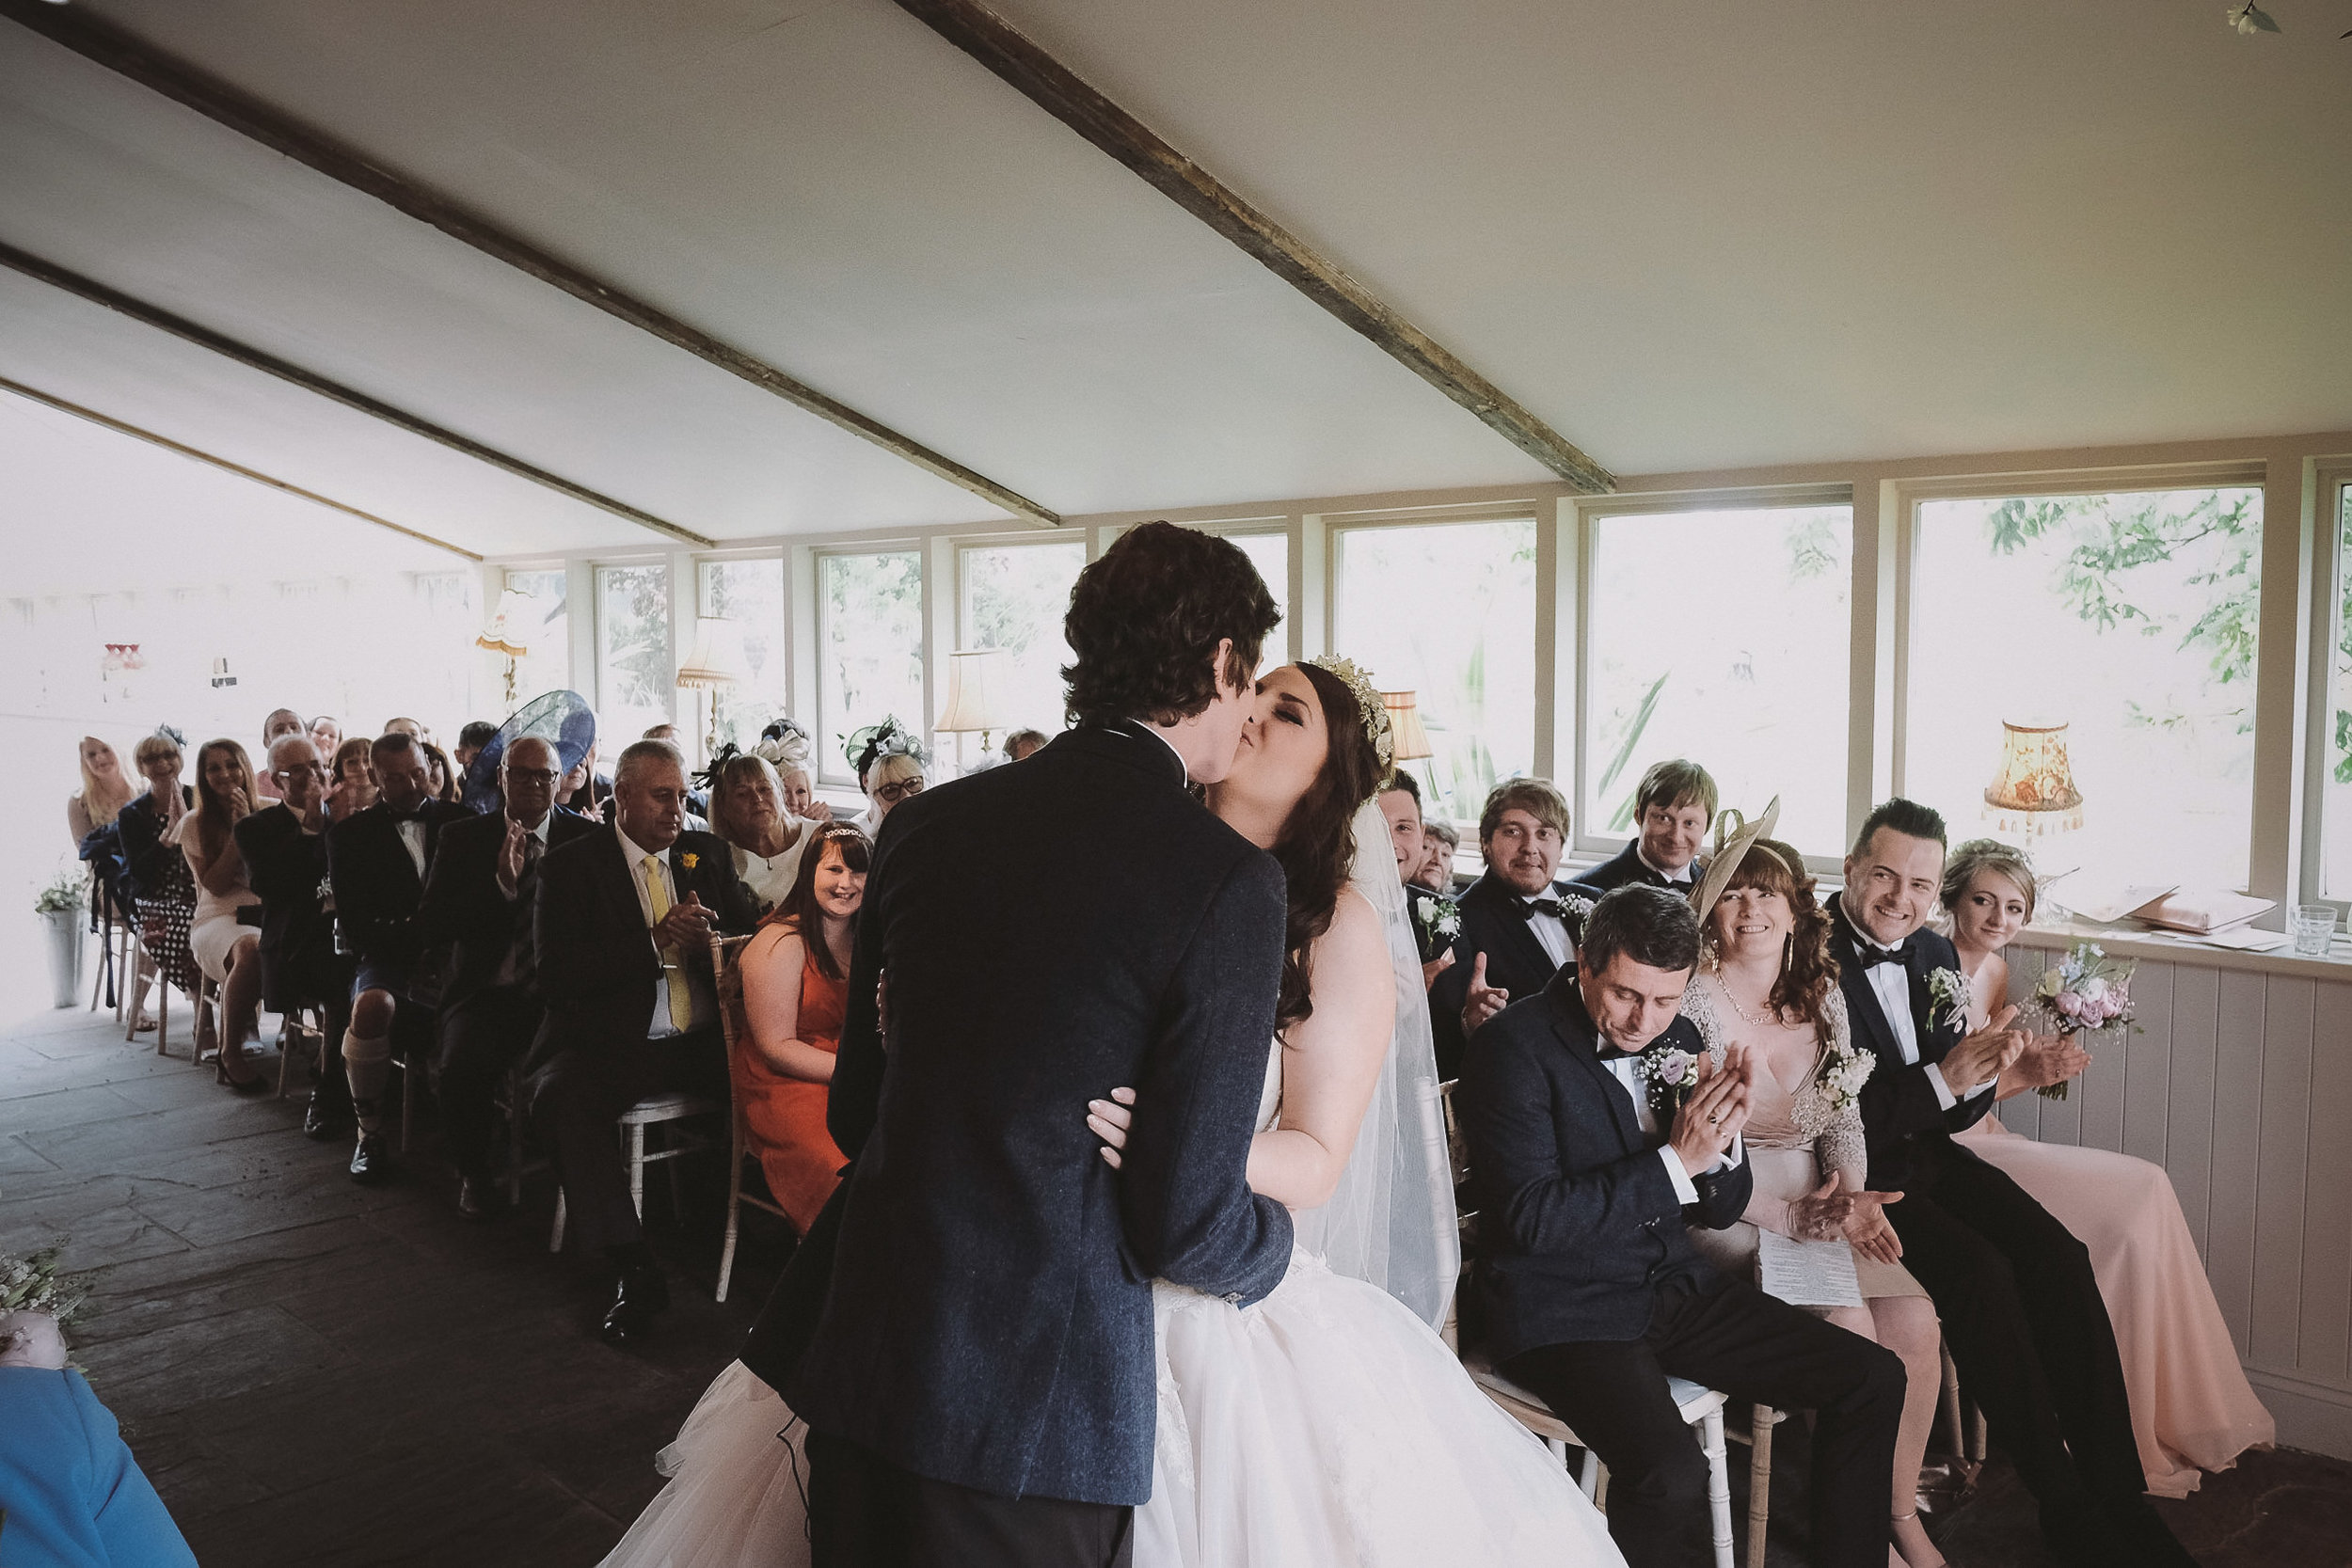 The bride and groom kiss during the wedding ceremony at Newton Hall, Northumberland by Barry Forshaw